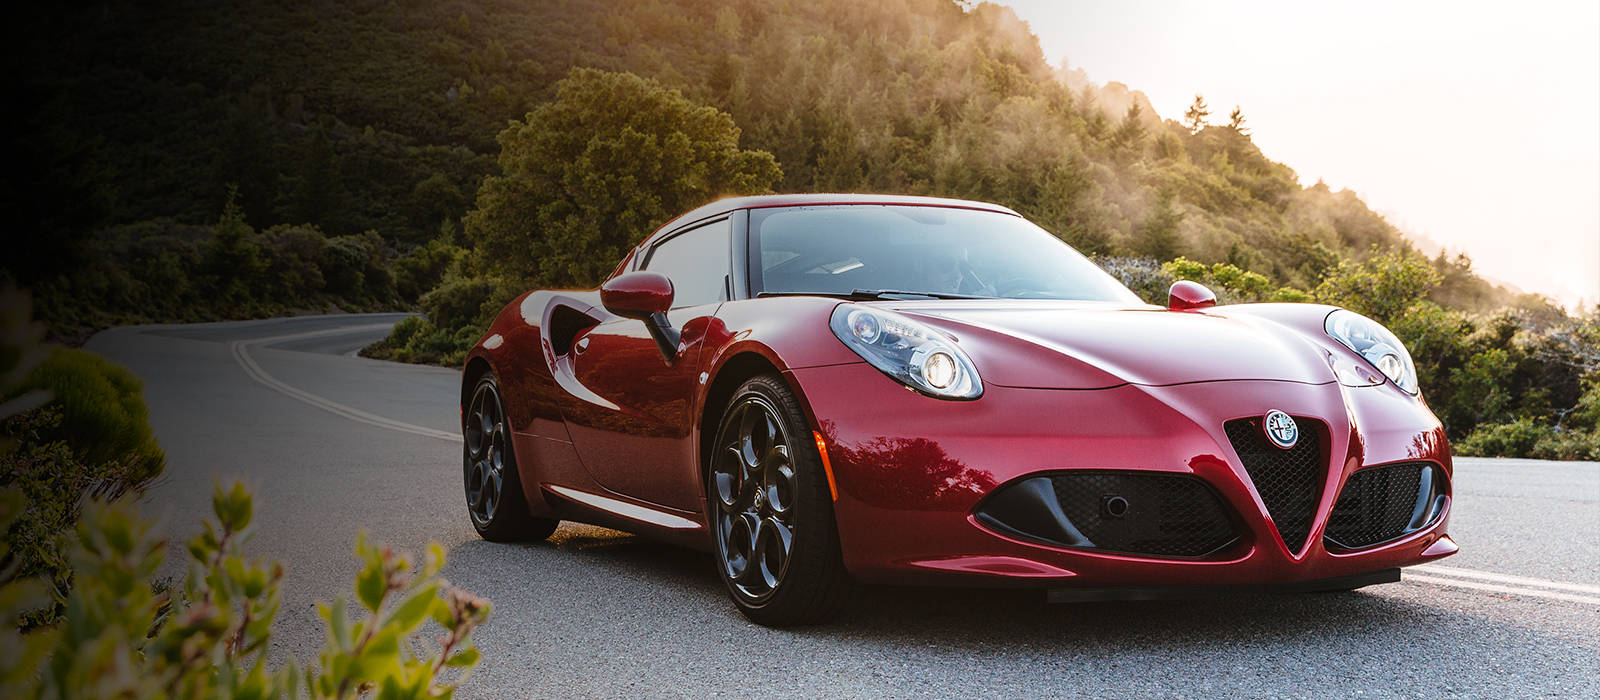 Is It Right That I Want To Swap A Busso V6 Into A Alfa 4c Or Would